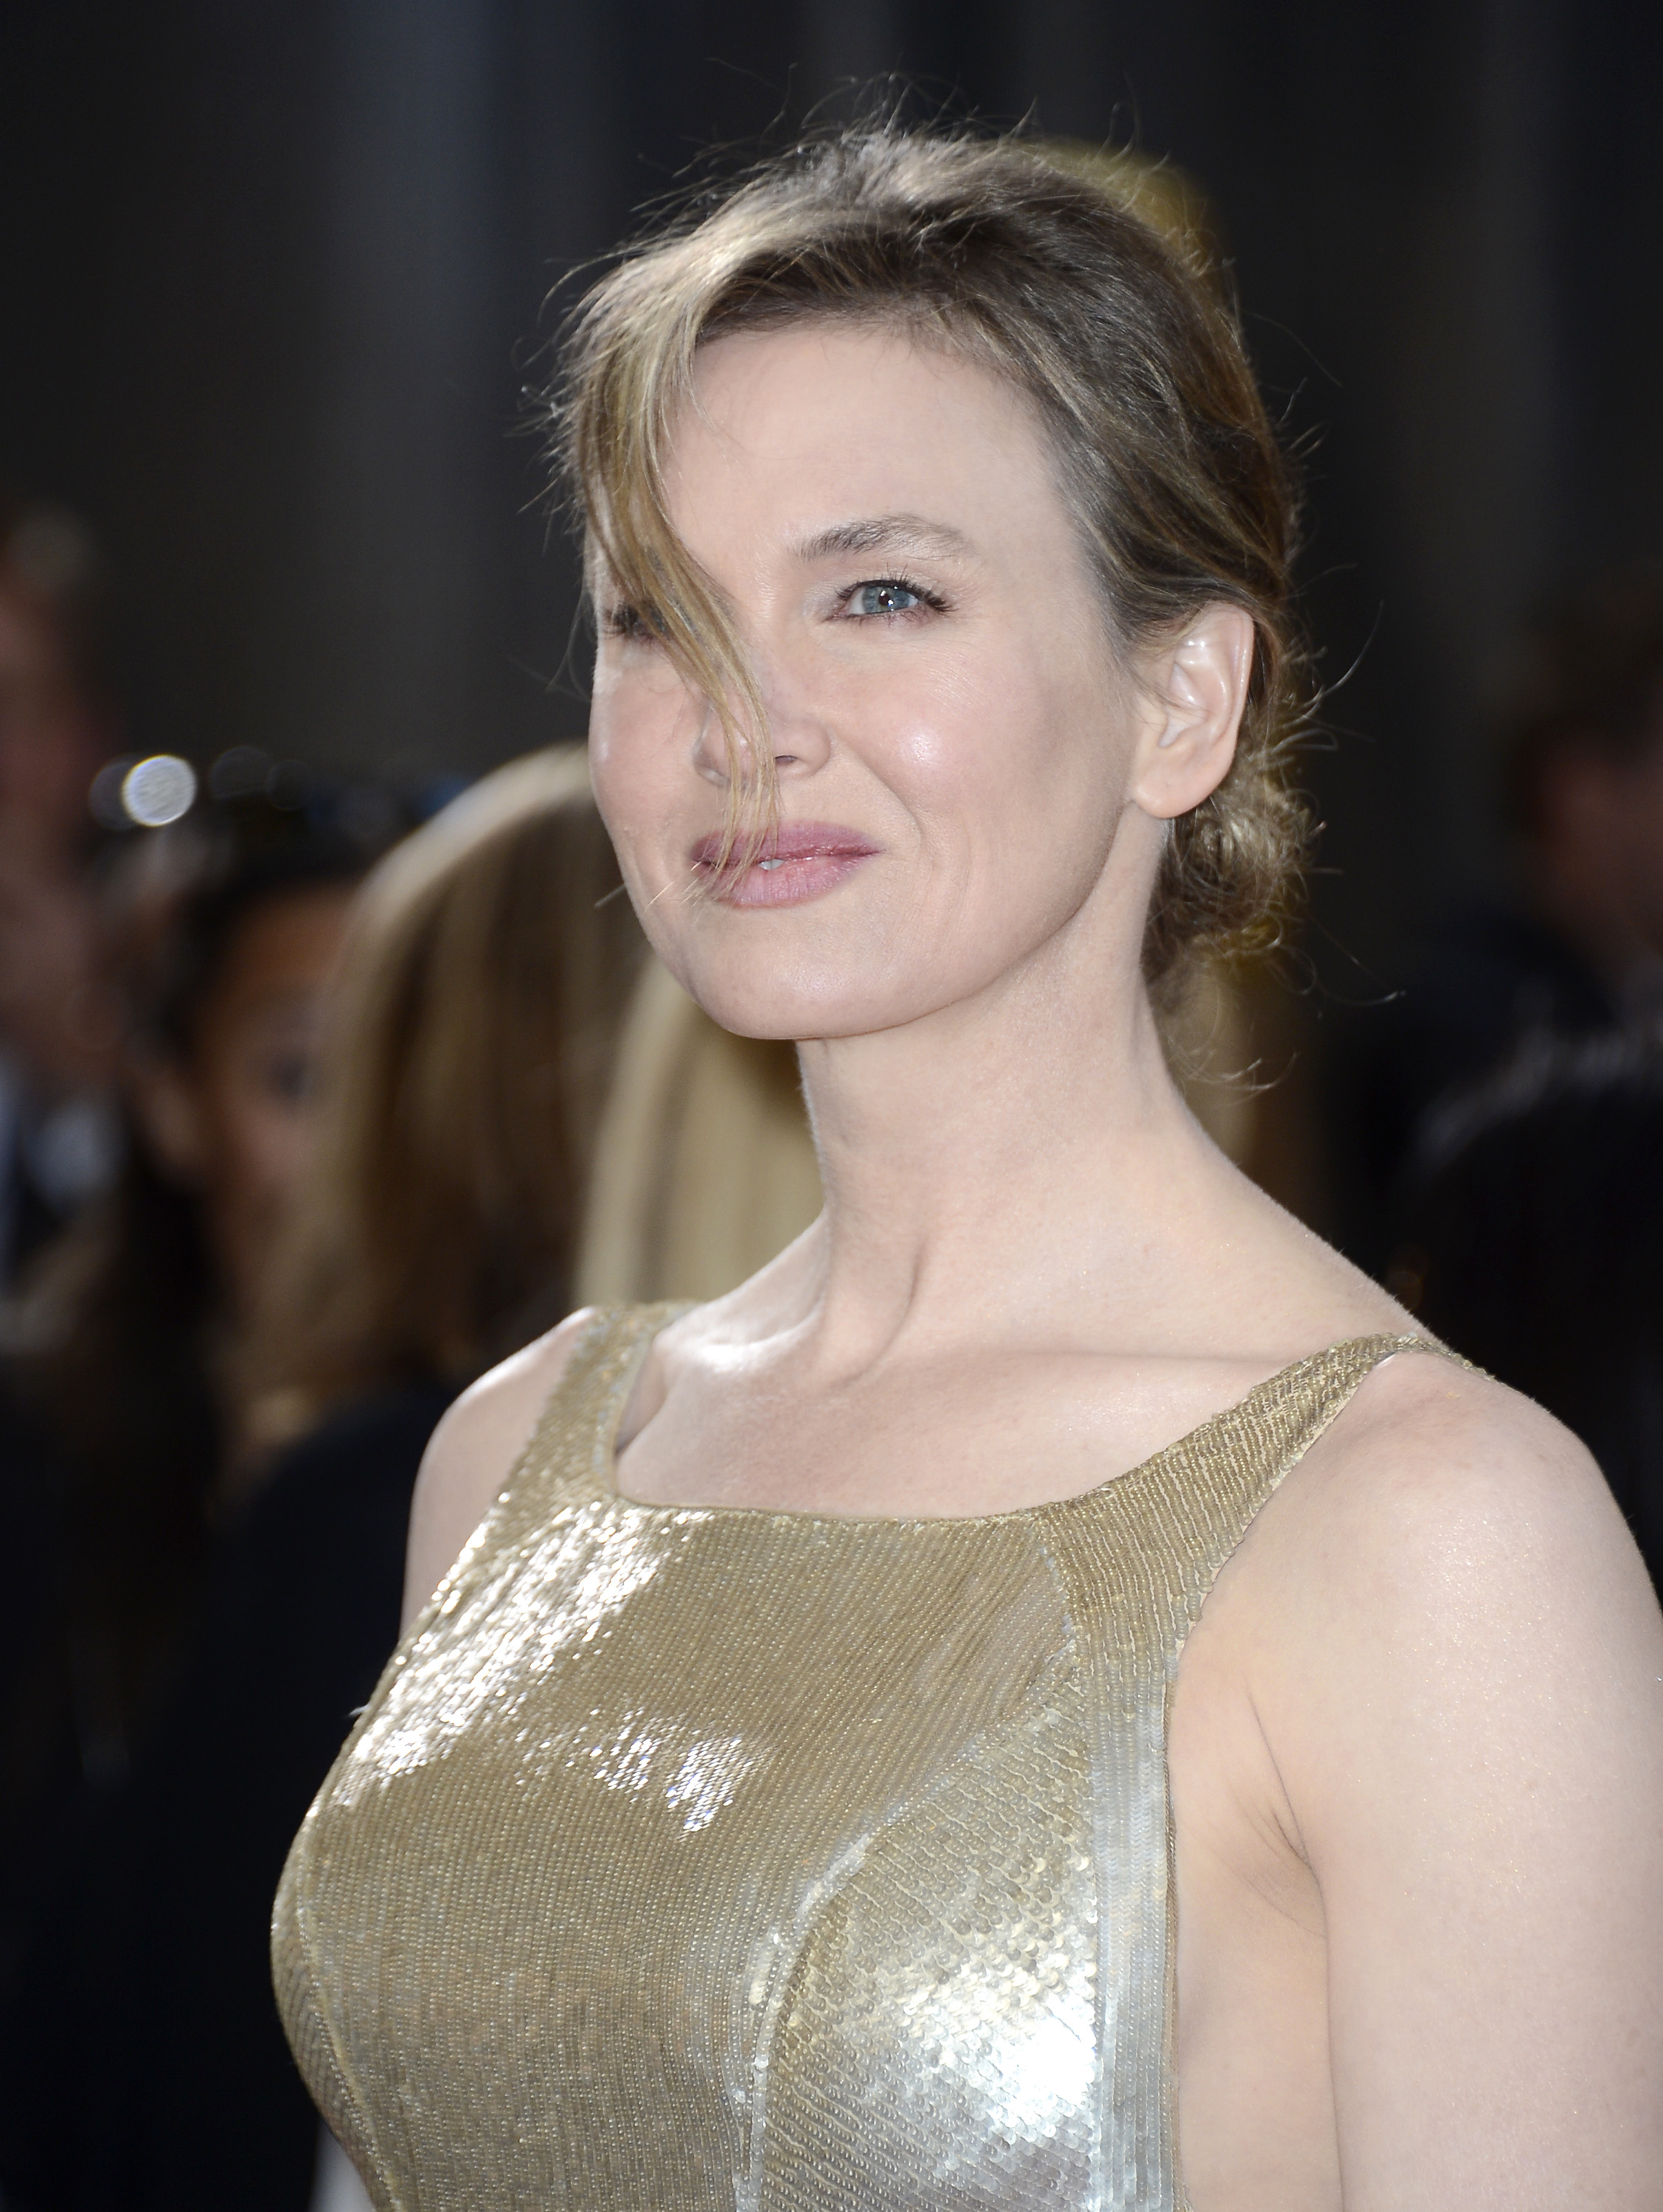 Renée Zellweger on the red carpet at the Oscars 2013.